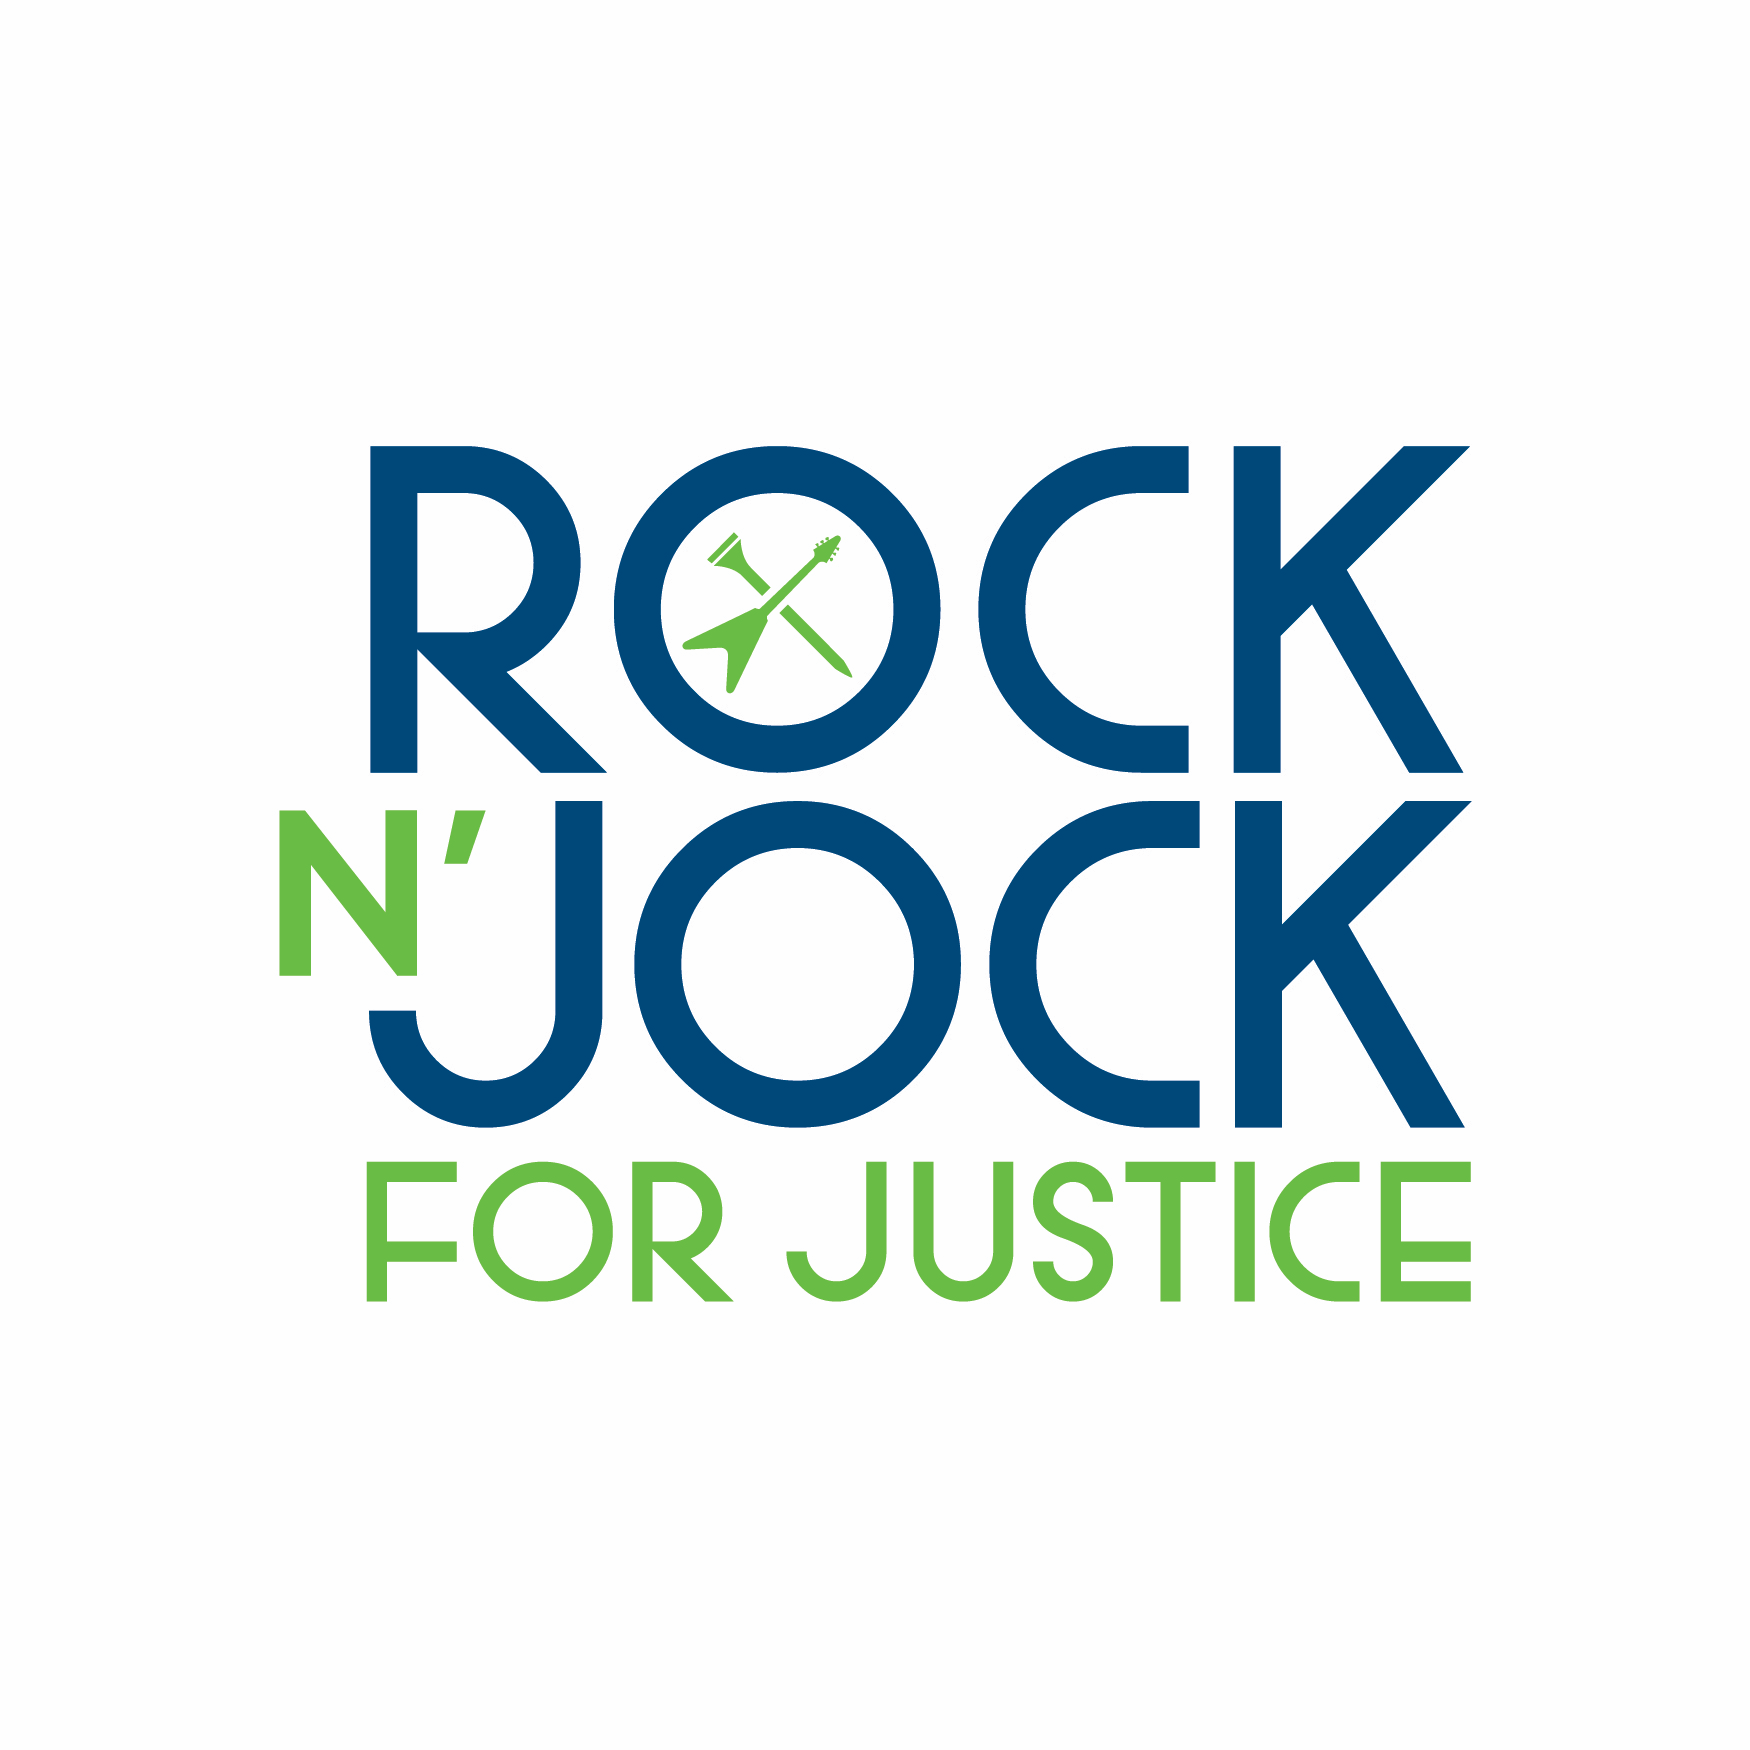 Our annual golf fundraiser is held every fall and is open to the community. We are thrilled to continue expanding Rock n' Jock for Justice to help promote awareness of crime victims' rights and the impact of Marsy's Law throughout Ohio.